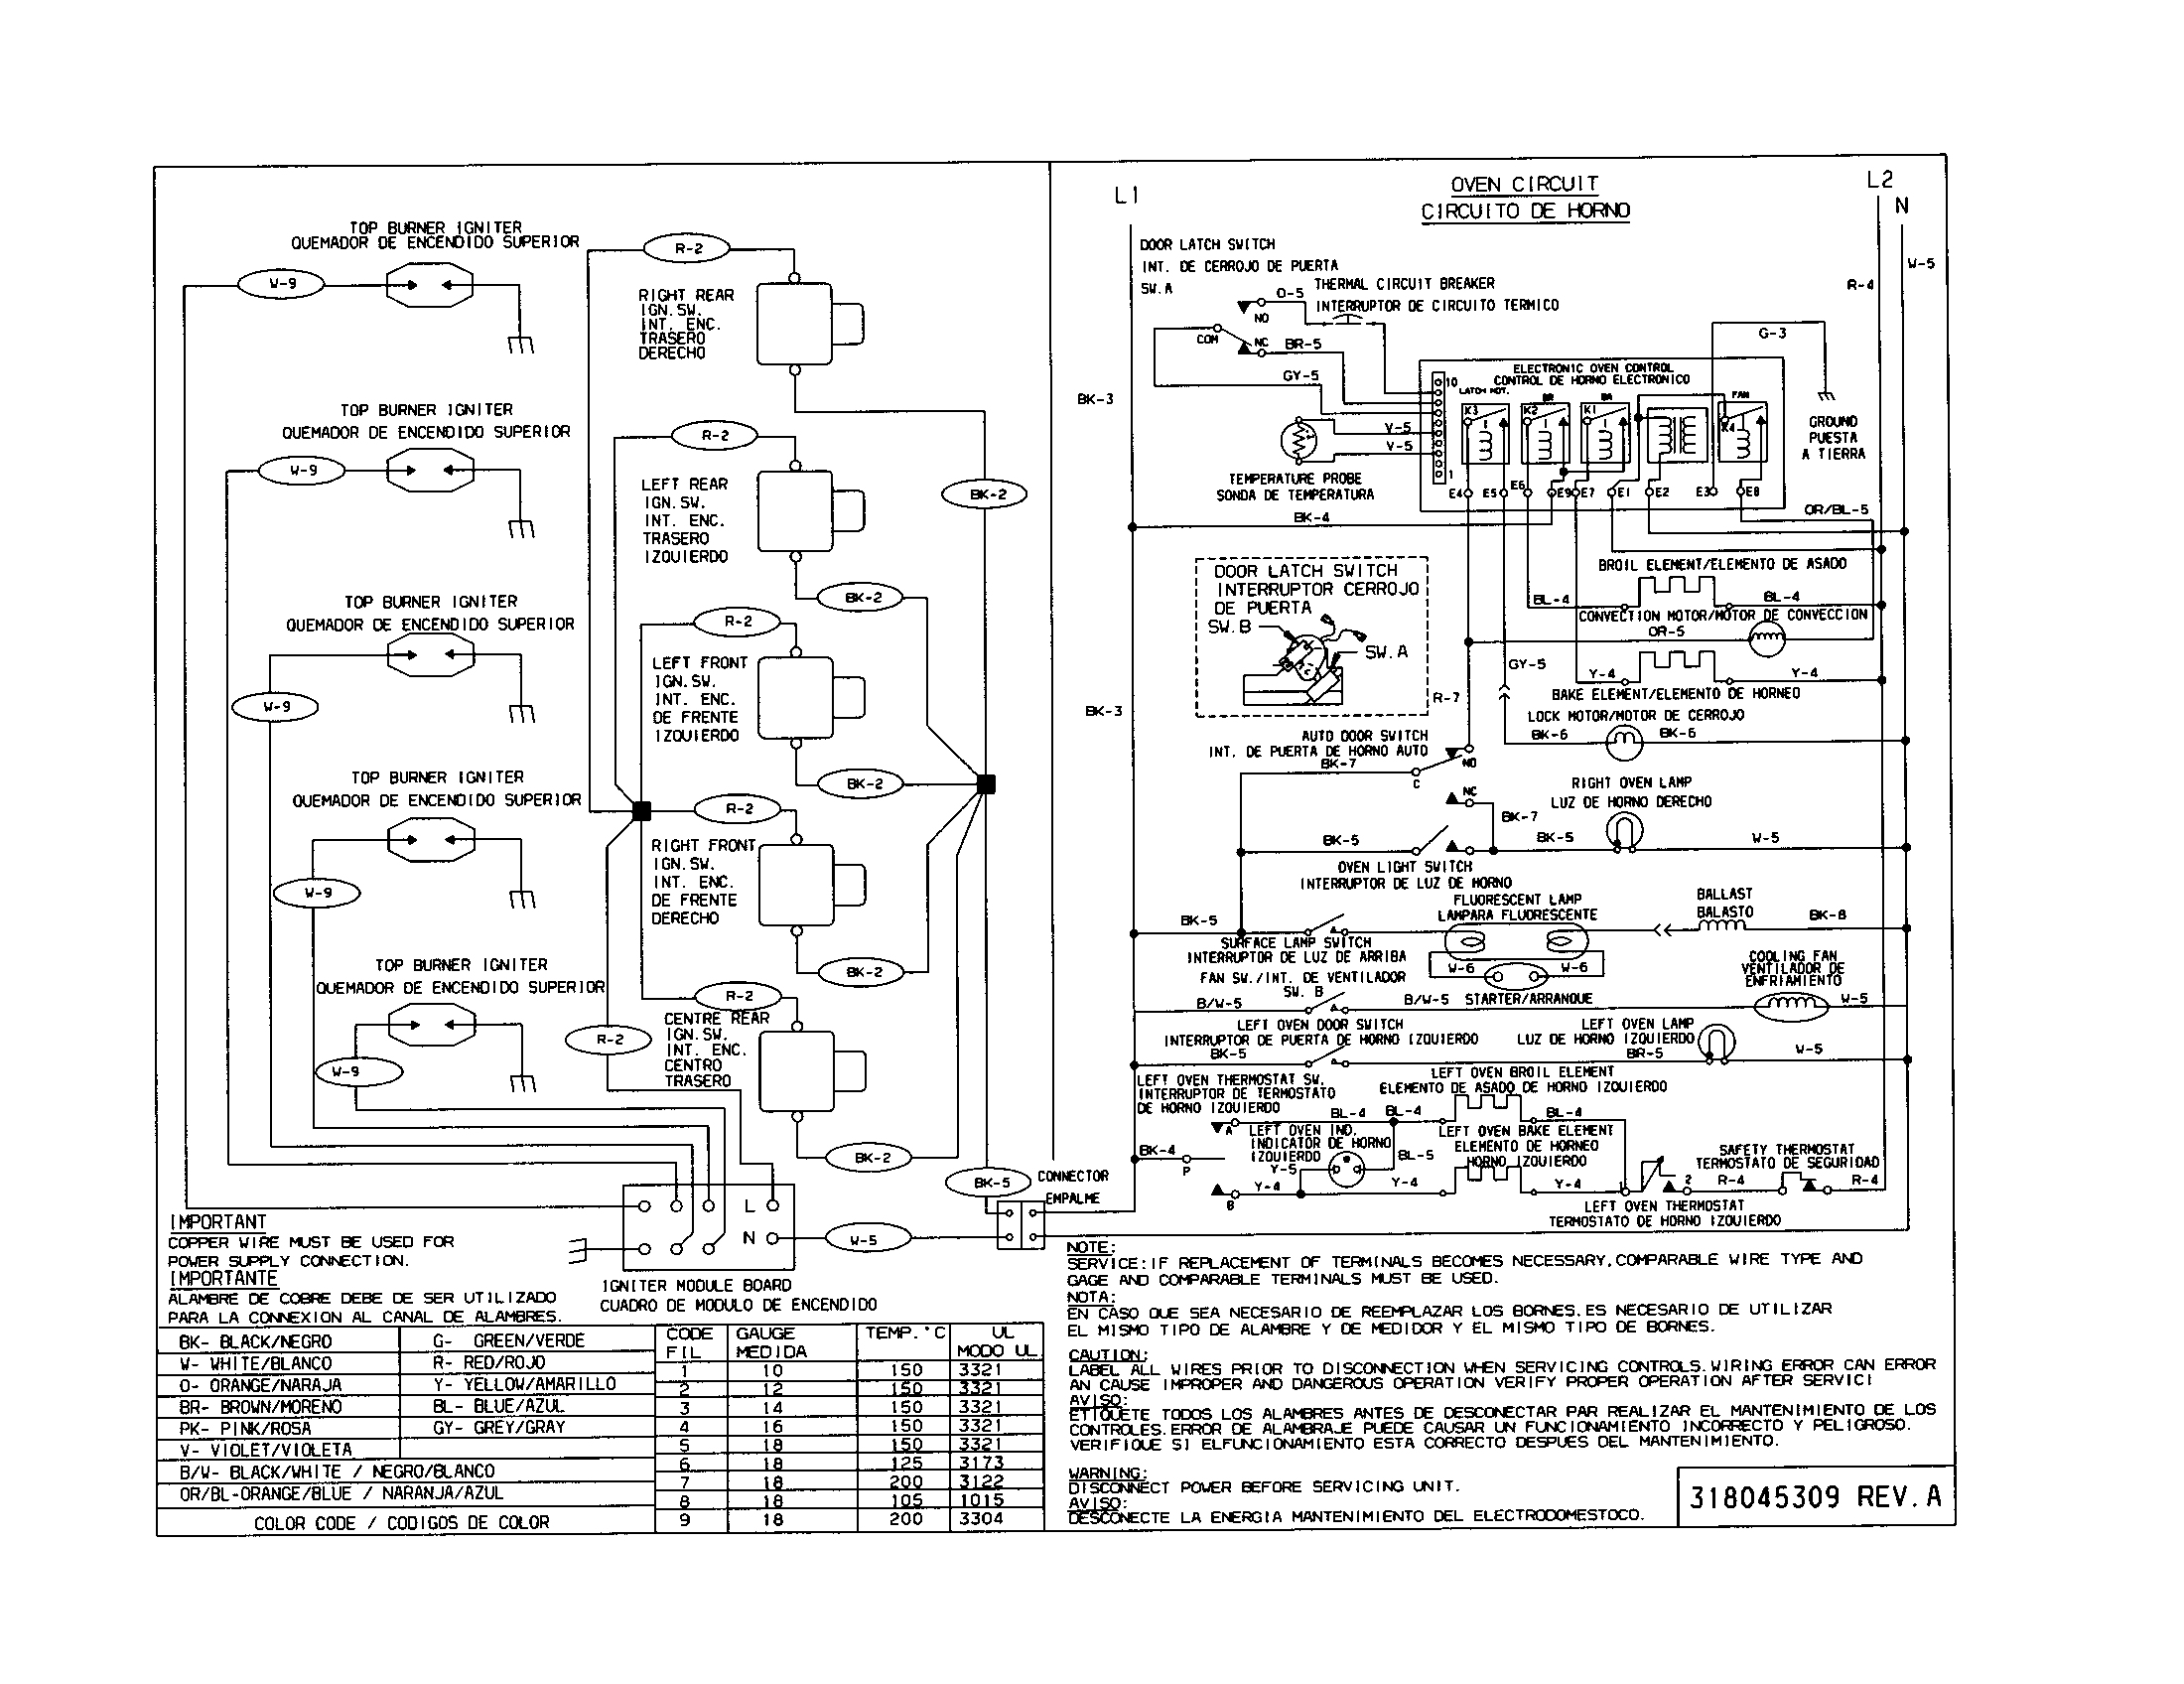 kenmore range wiring diagram trusted wiring diagrams range diagram wiring kenmore 79096412404 kenmore cooktop wiring diagram whirlpool wiring diagrams, panasonic wiring diagram for ge electric burners kenmore